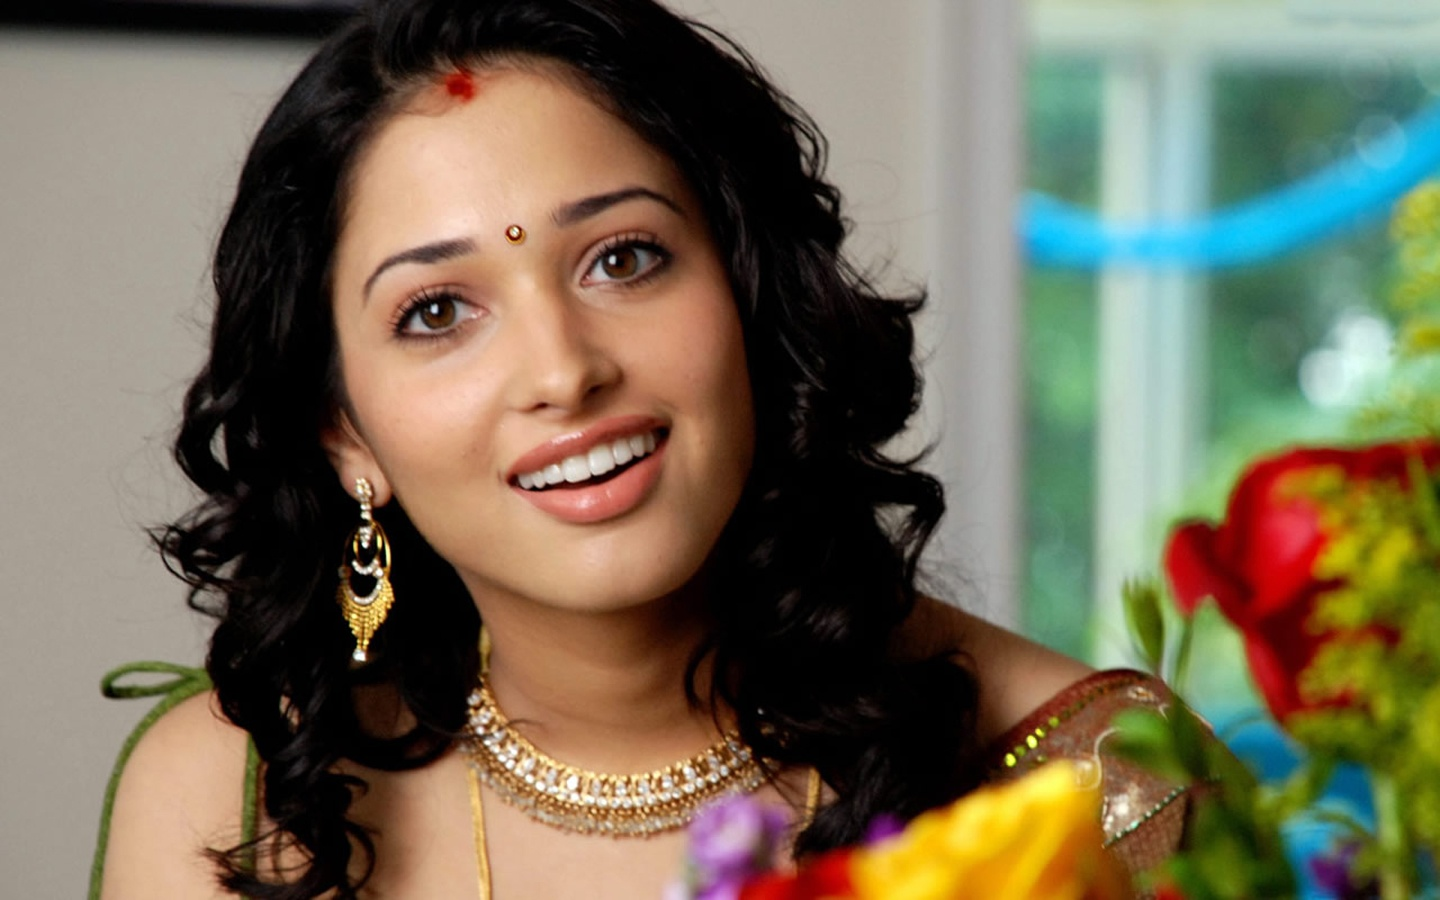 Tamanna Hd Saree Wallpaper: Free Wallpapers For PC